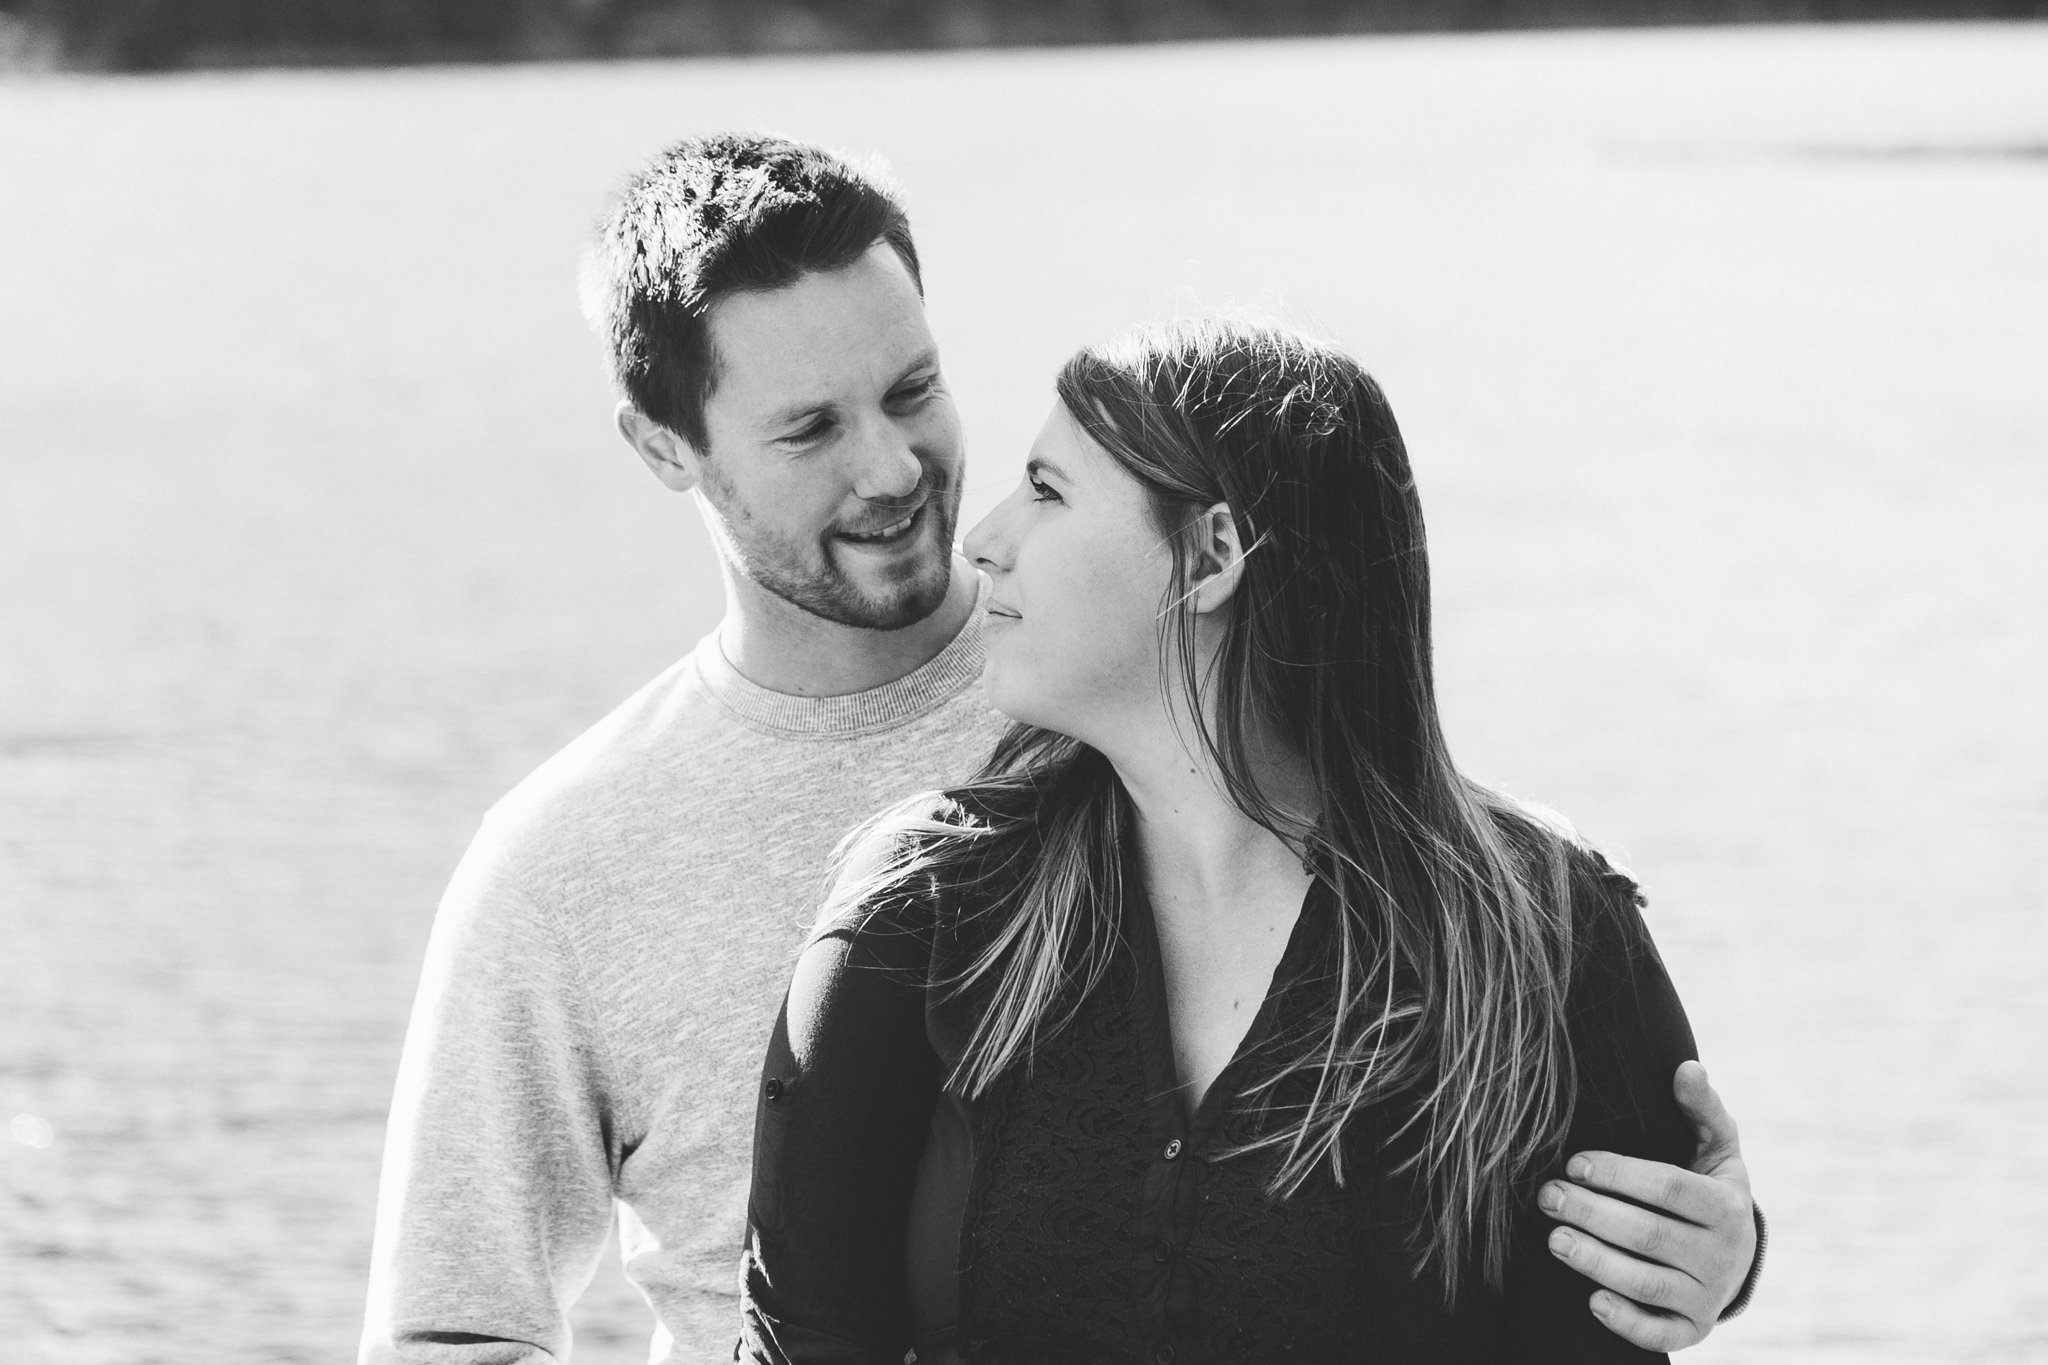 lethbridge-photographer-love-and-be-loved-photography-crowsnest-pass-engagement-andi-philip-picture-image-photo--10.jpg